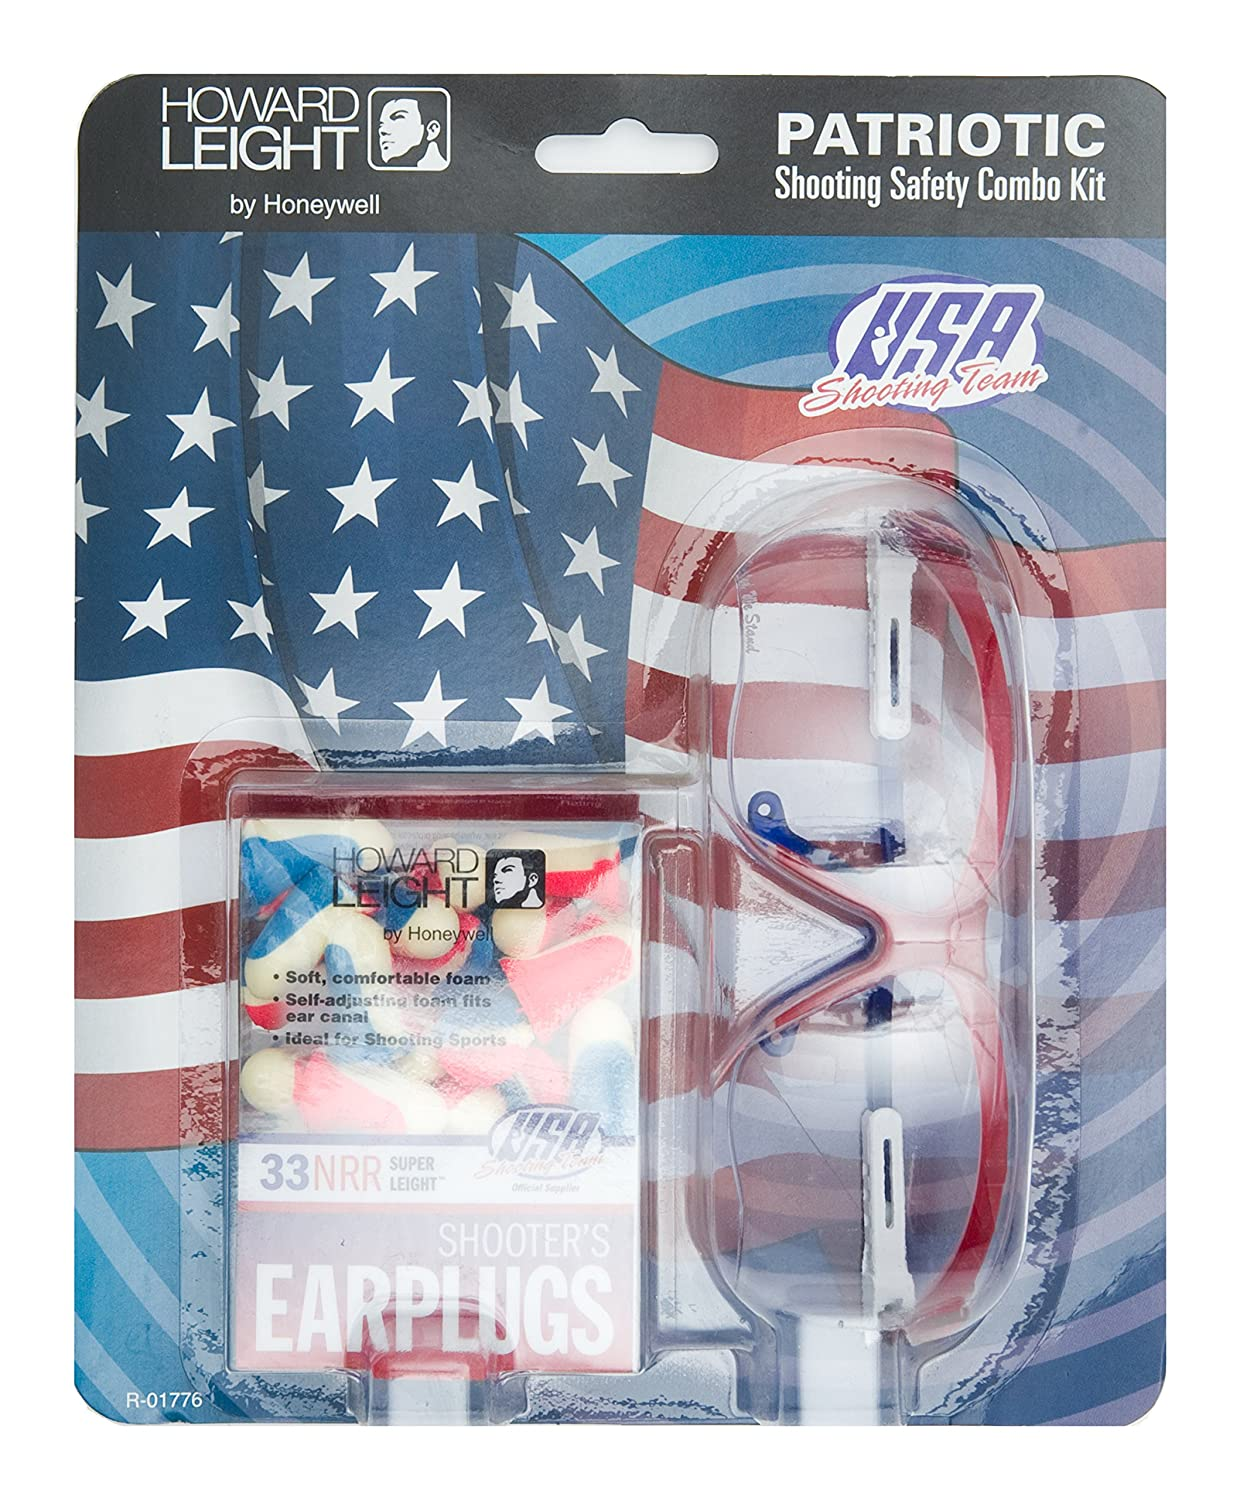 Howard Leight R-01776 Patriotic Kit, Red/White/Blue by Howard Leight  B01IJZ8ZKO